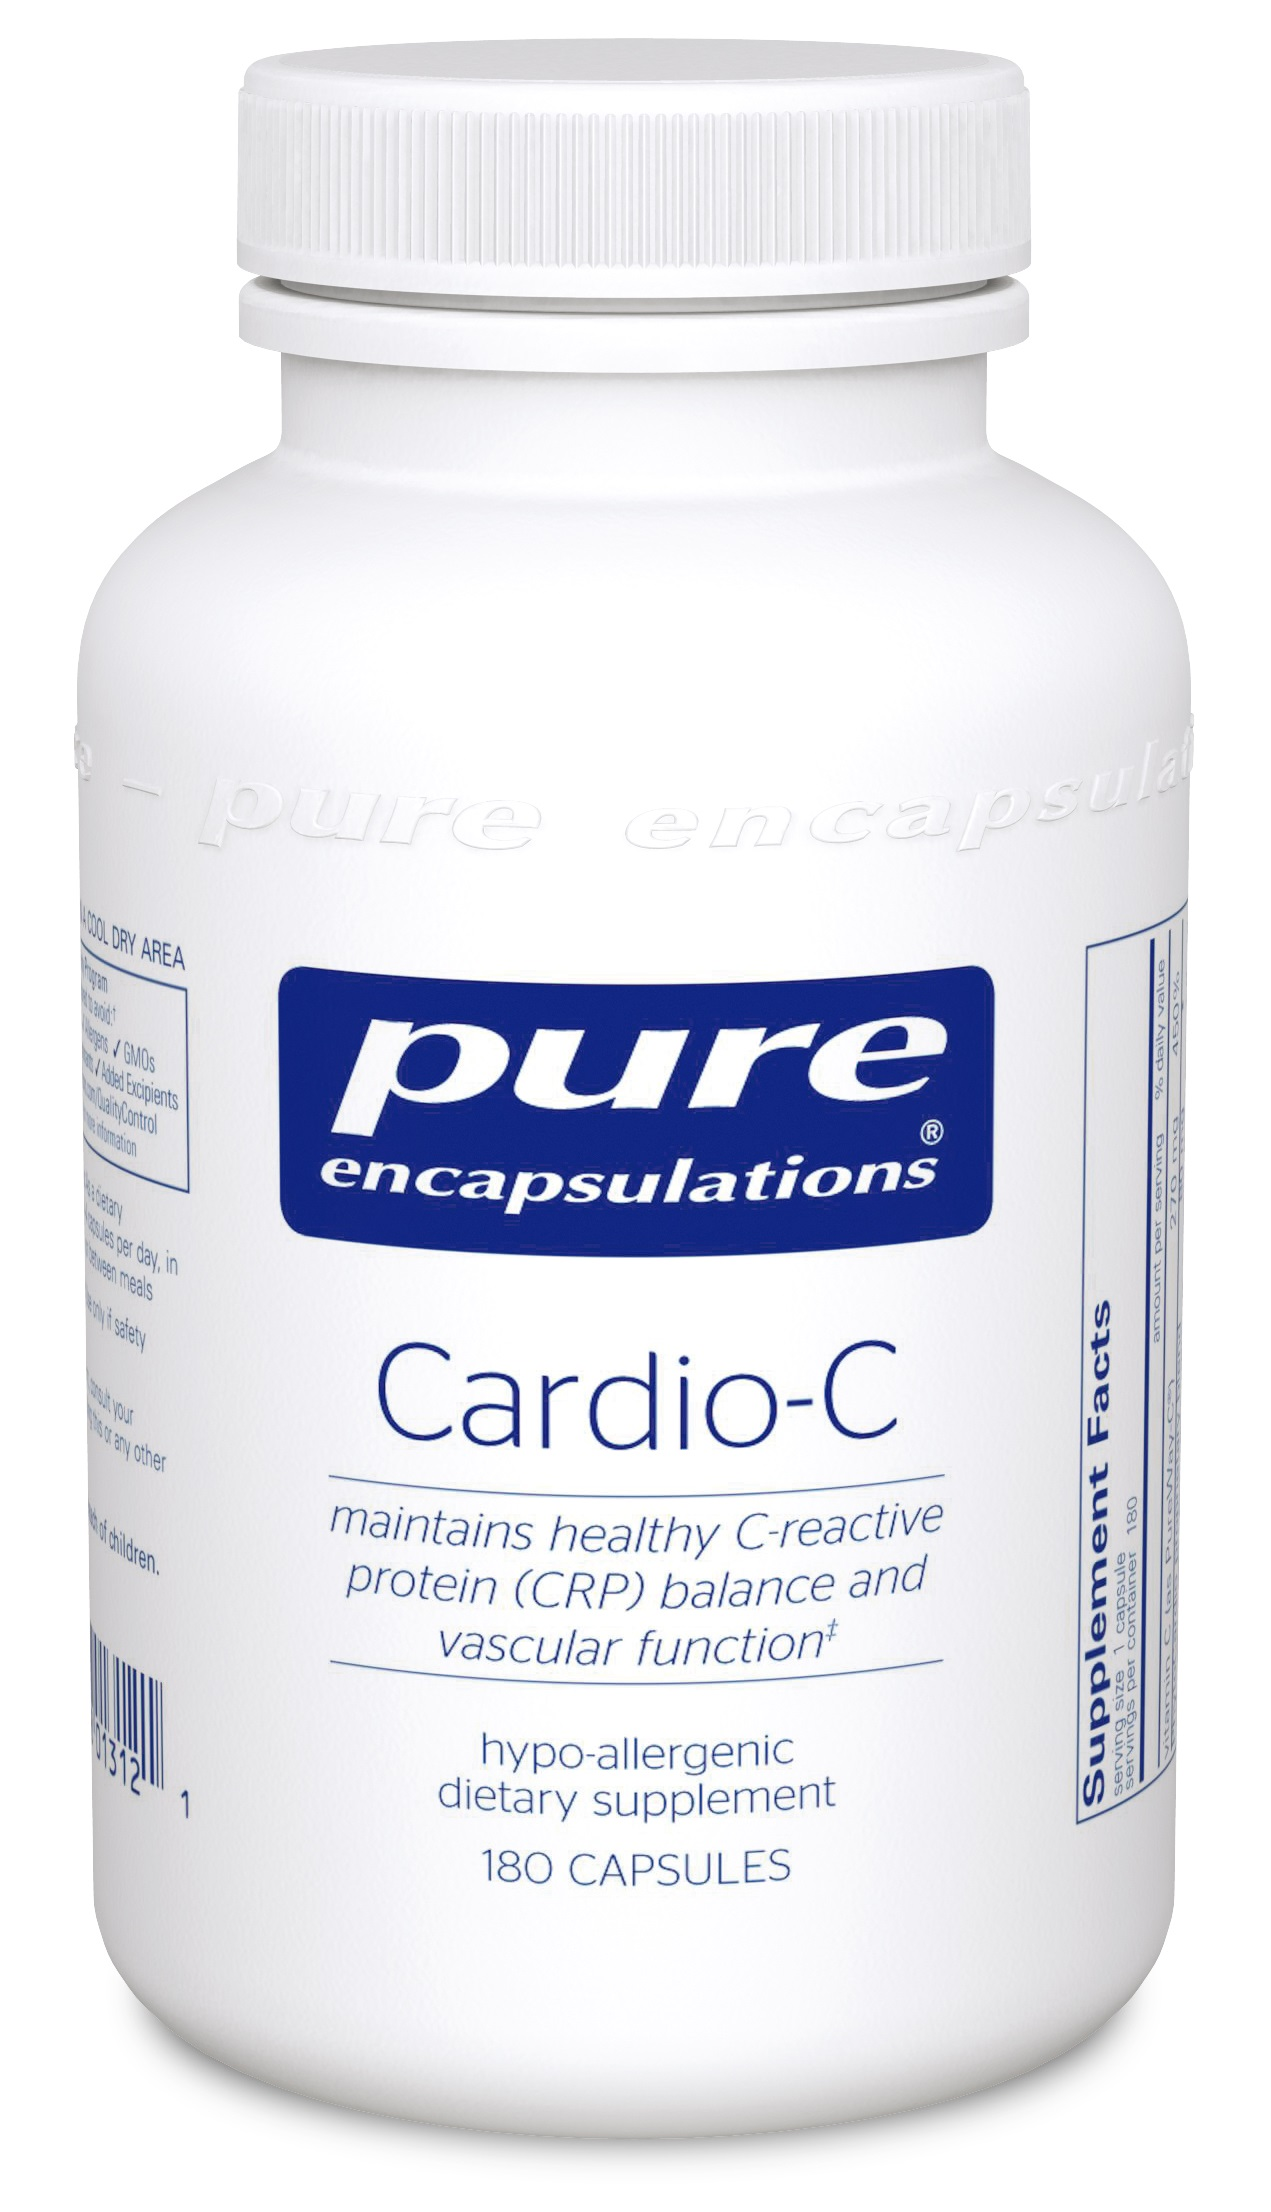 Pure Encapsulations Cardio-C